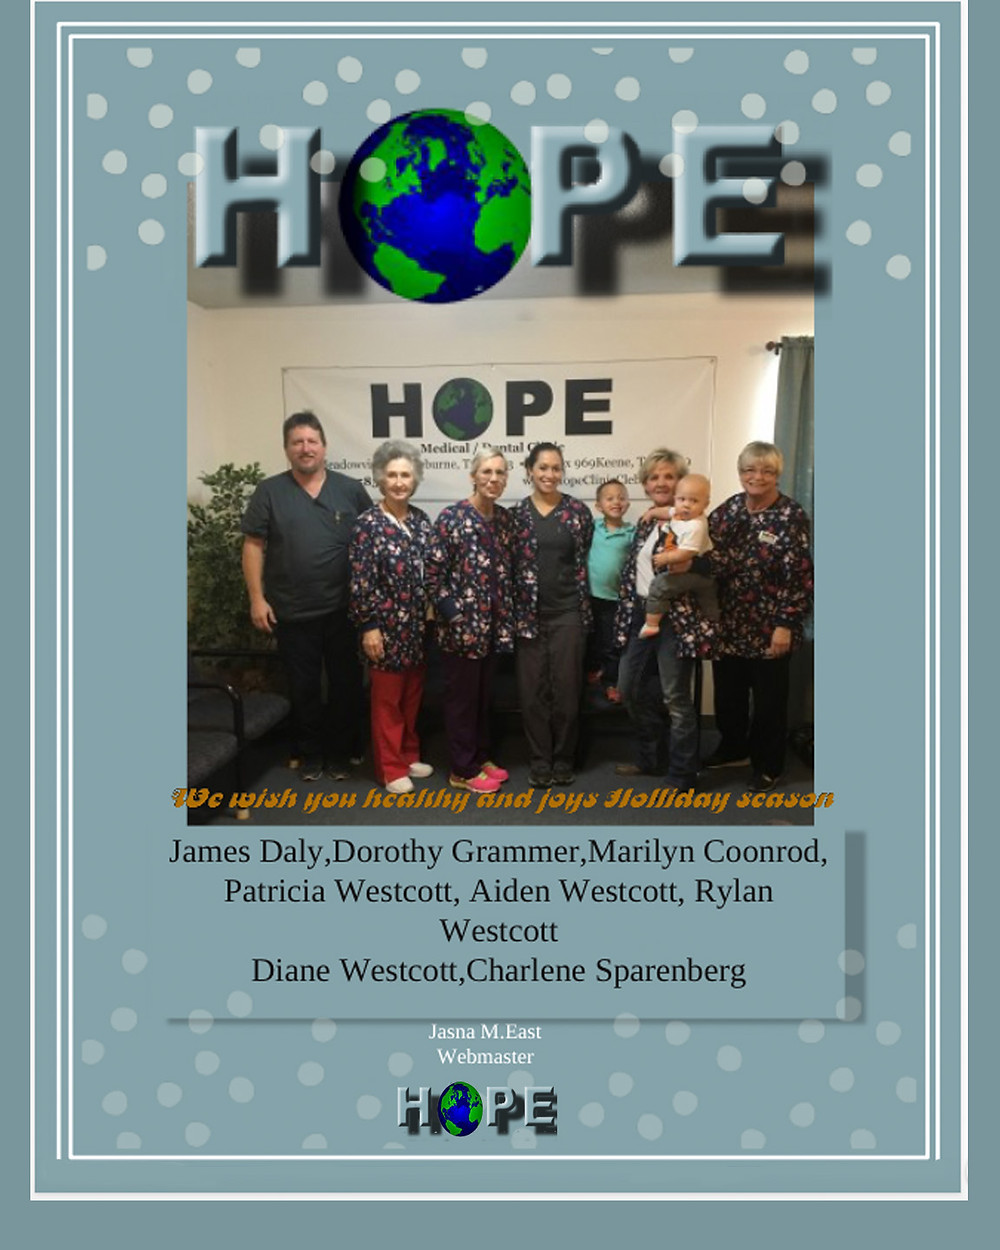 The HOPE medical dental clinic will be closed until Wednesday December 27.